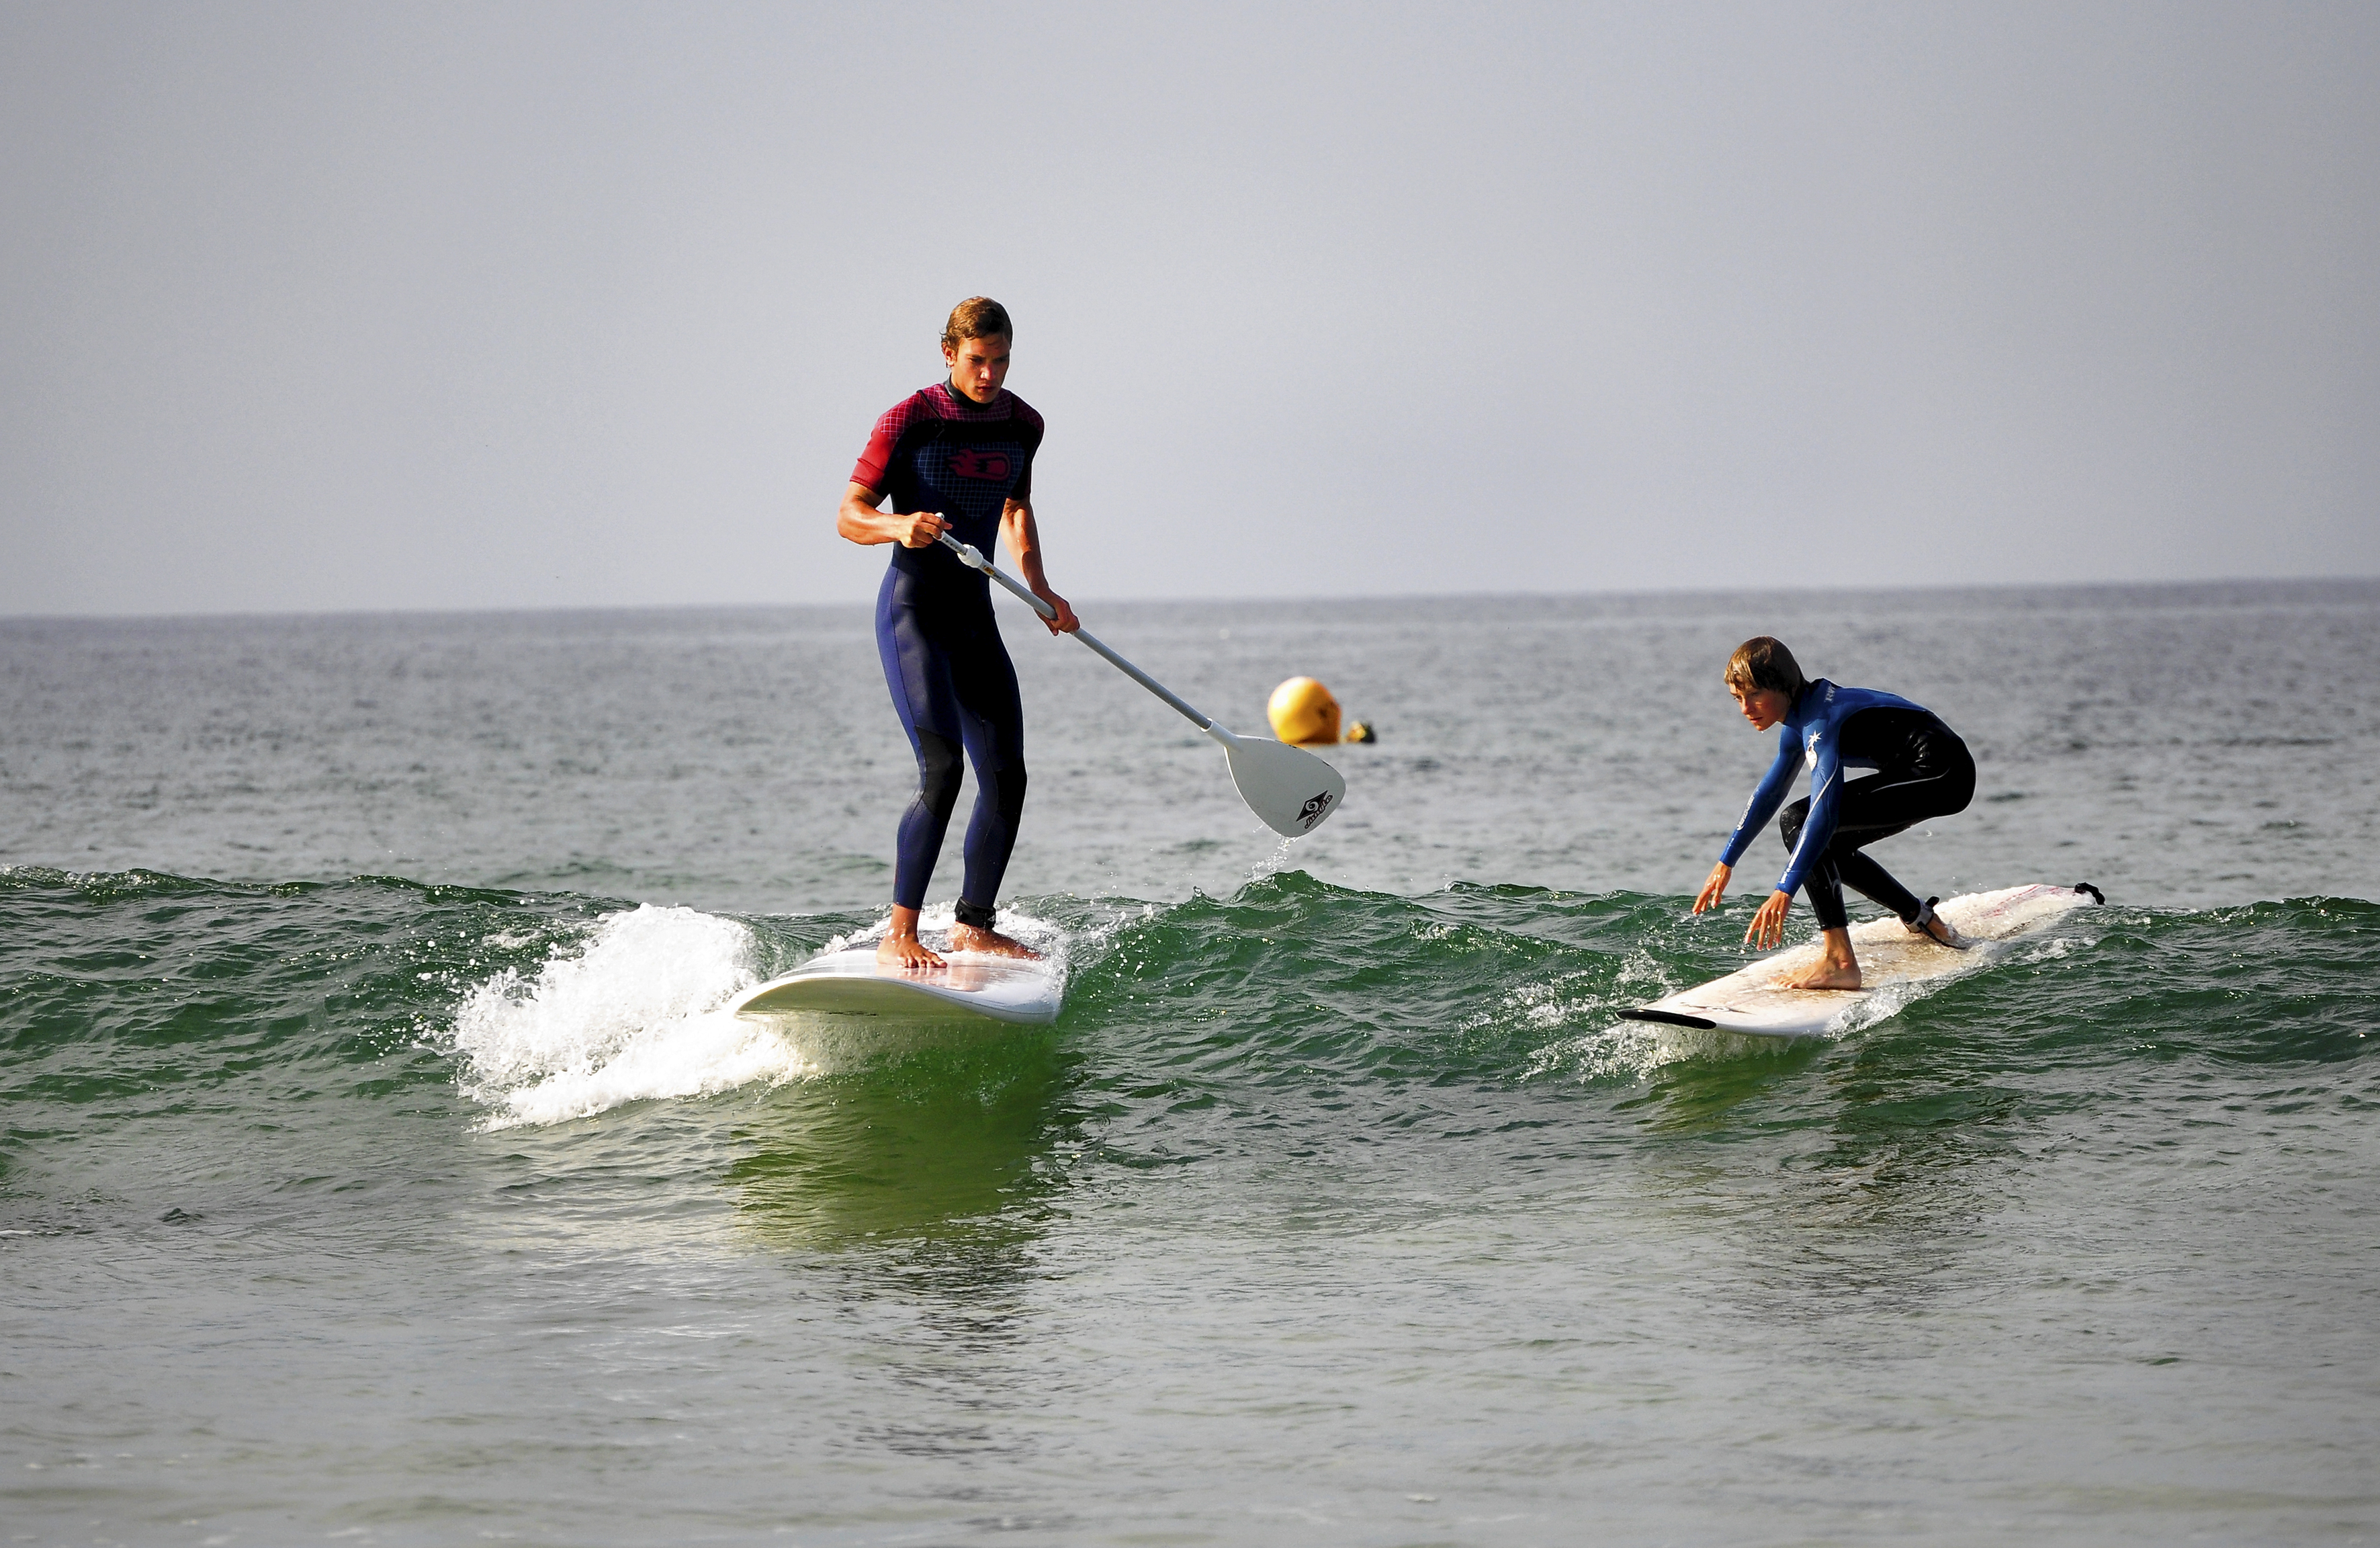 cours de surf et de Stand up paddle